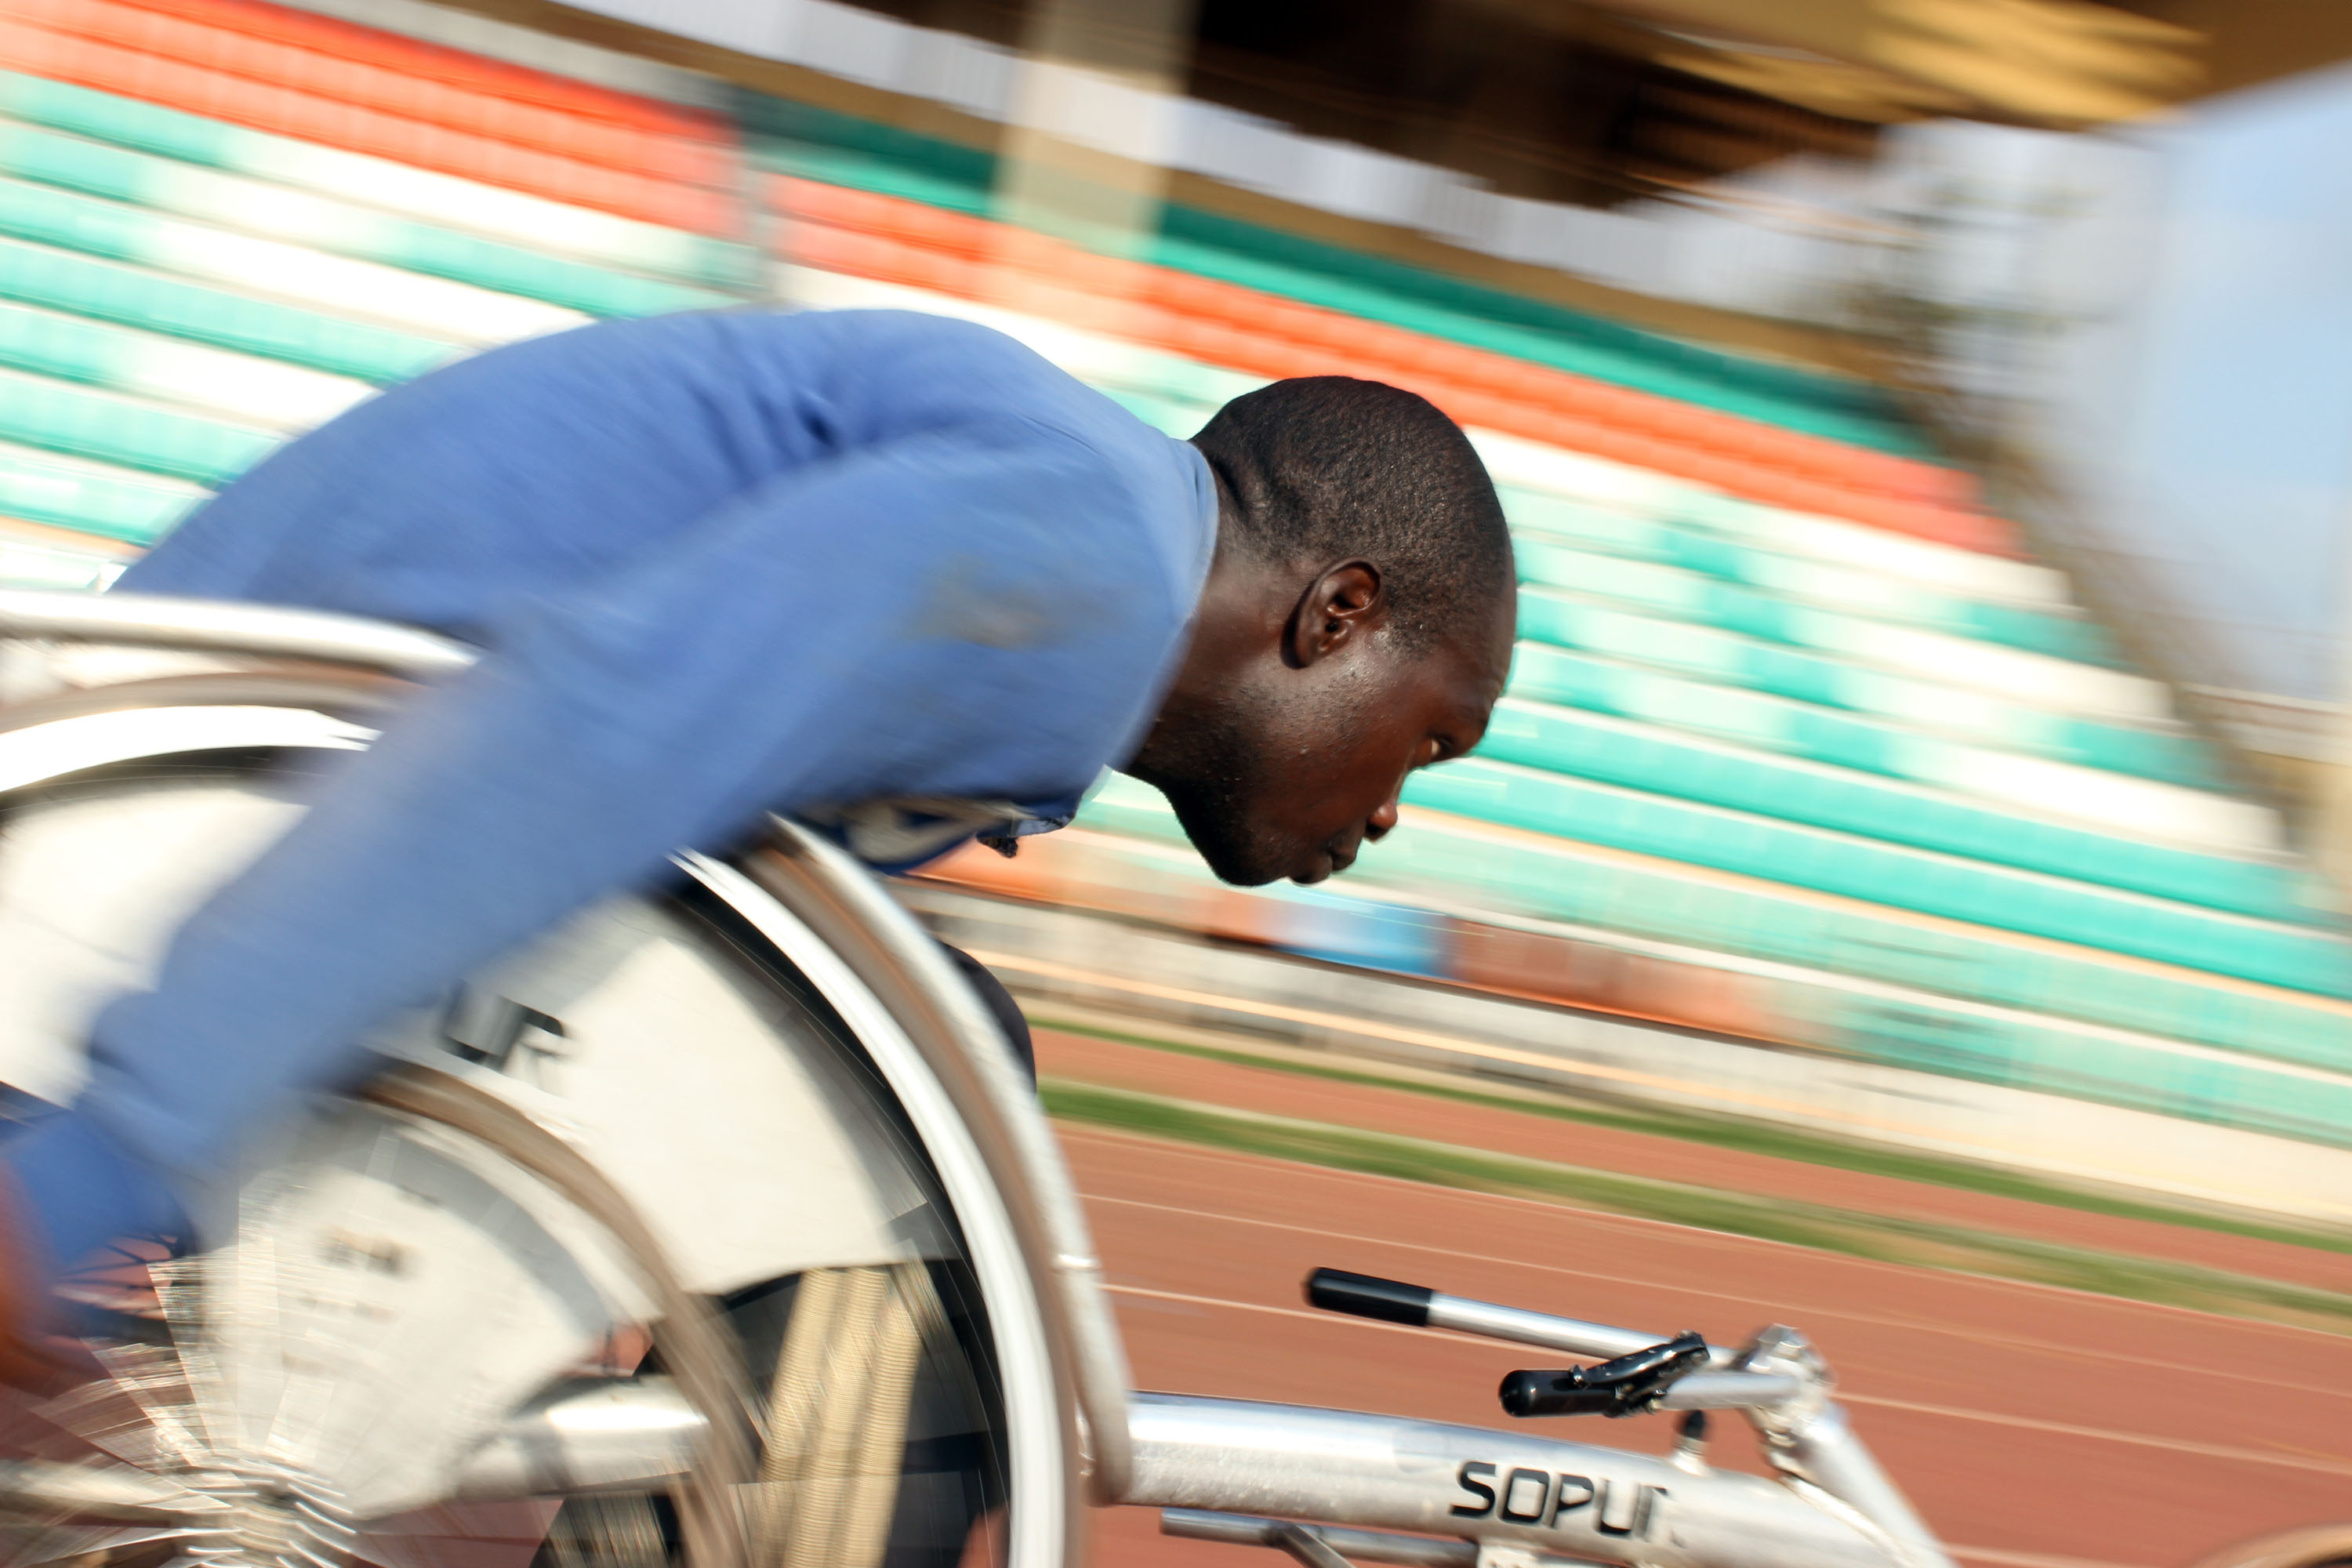 3_obasola_photography_home_limitless_disability_paralympics_sports